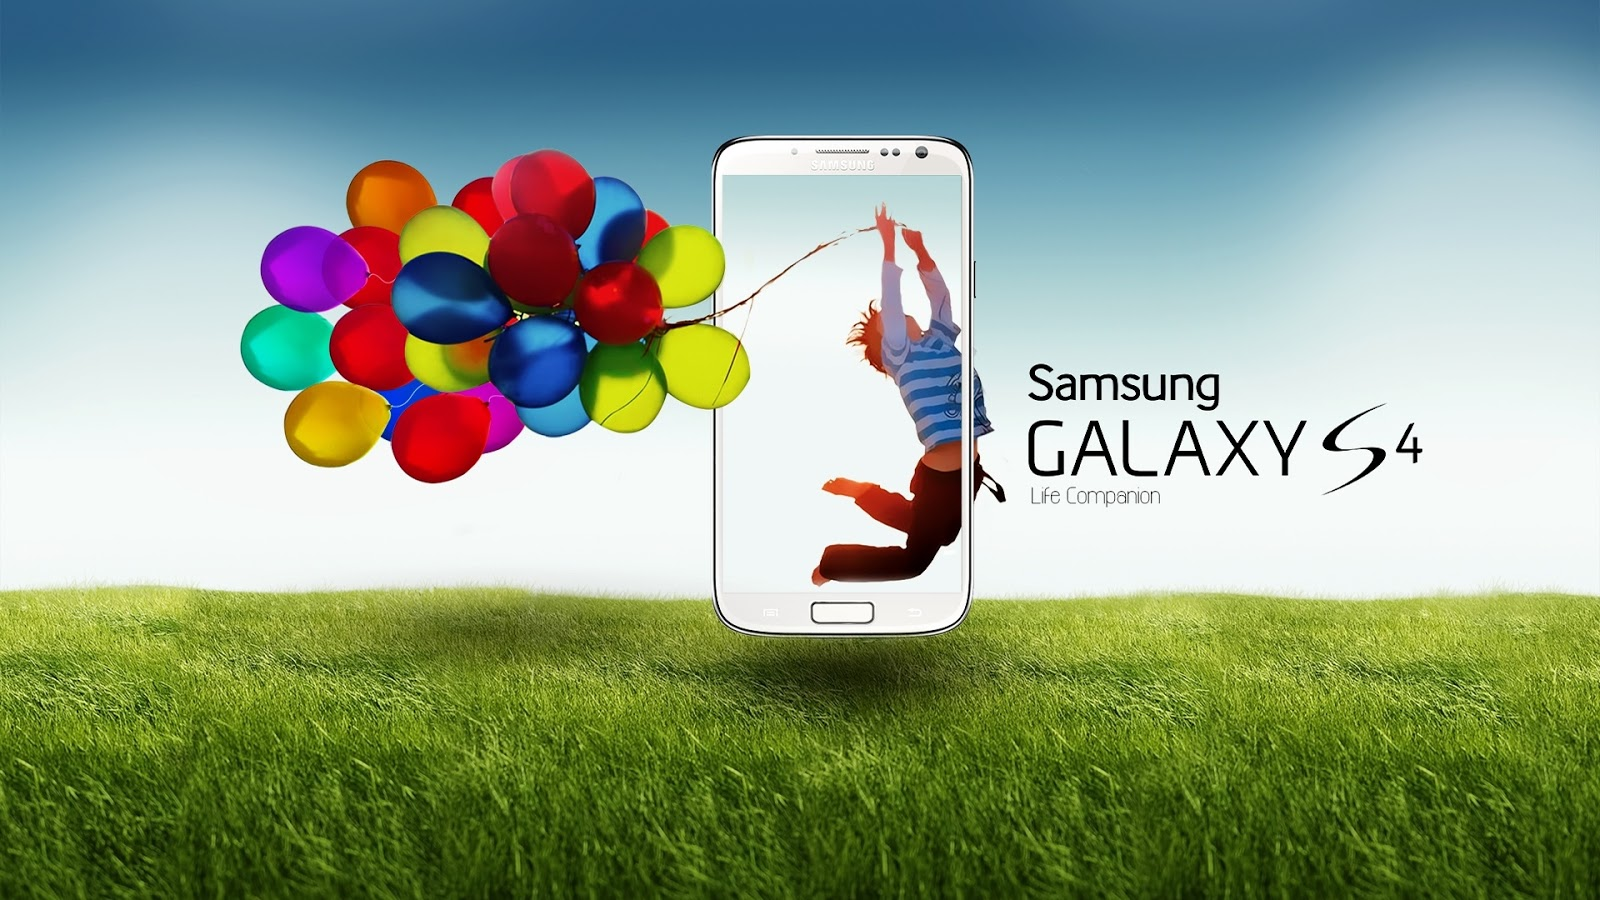 hd wallpapers: samsung galaxy s4 life companion